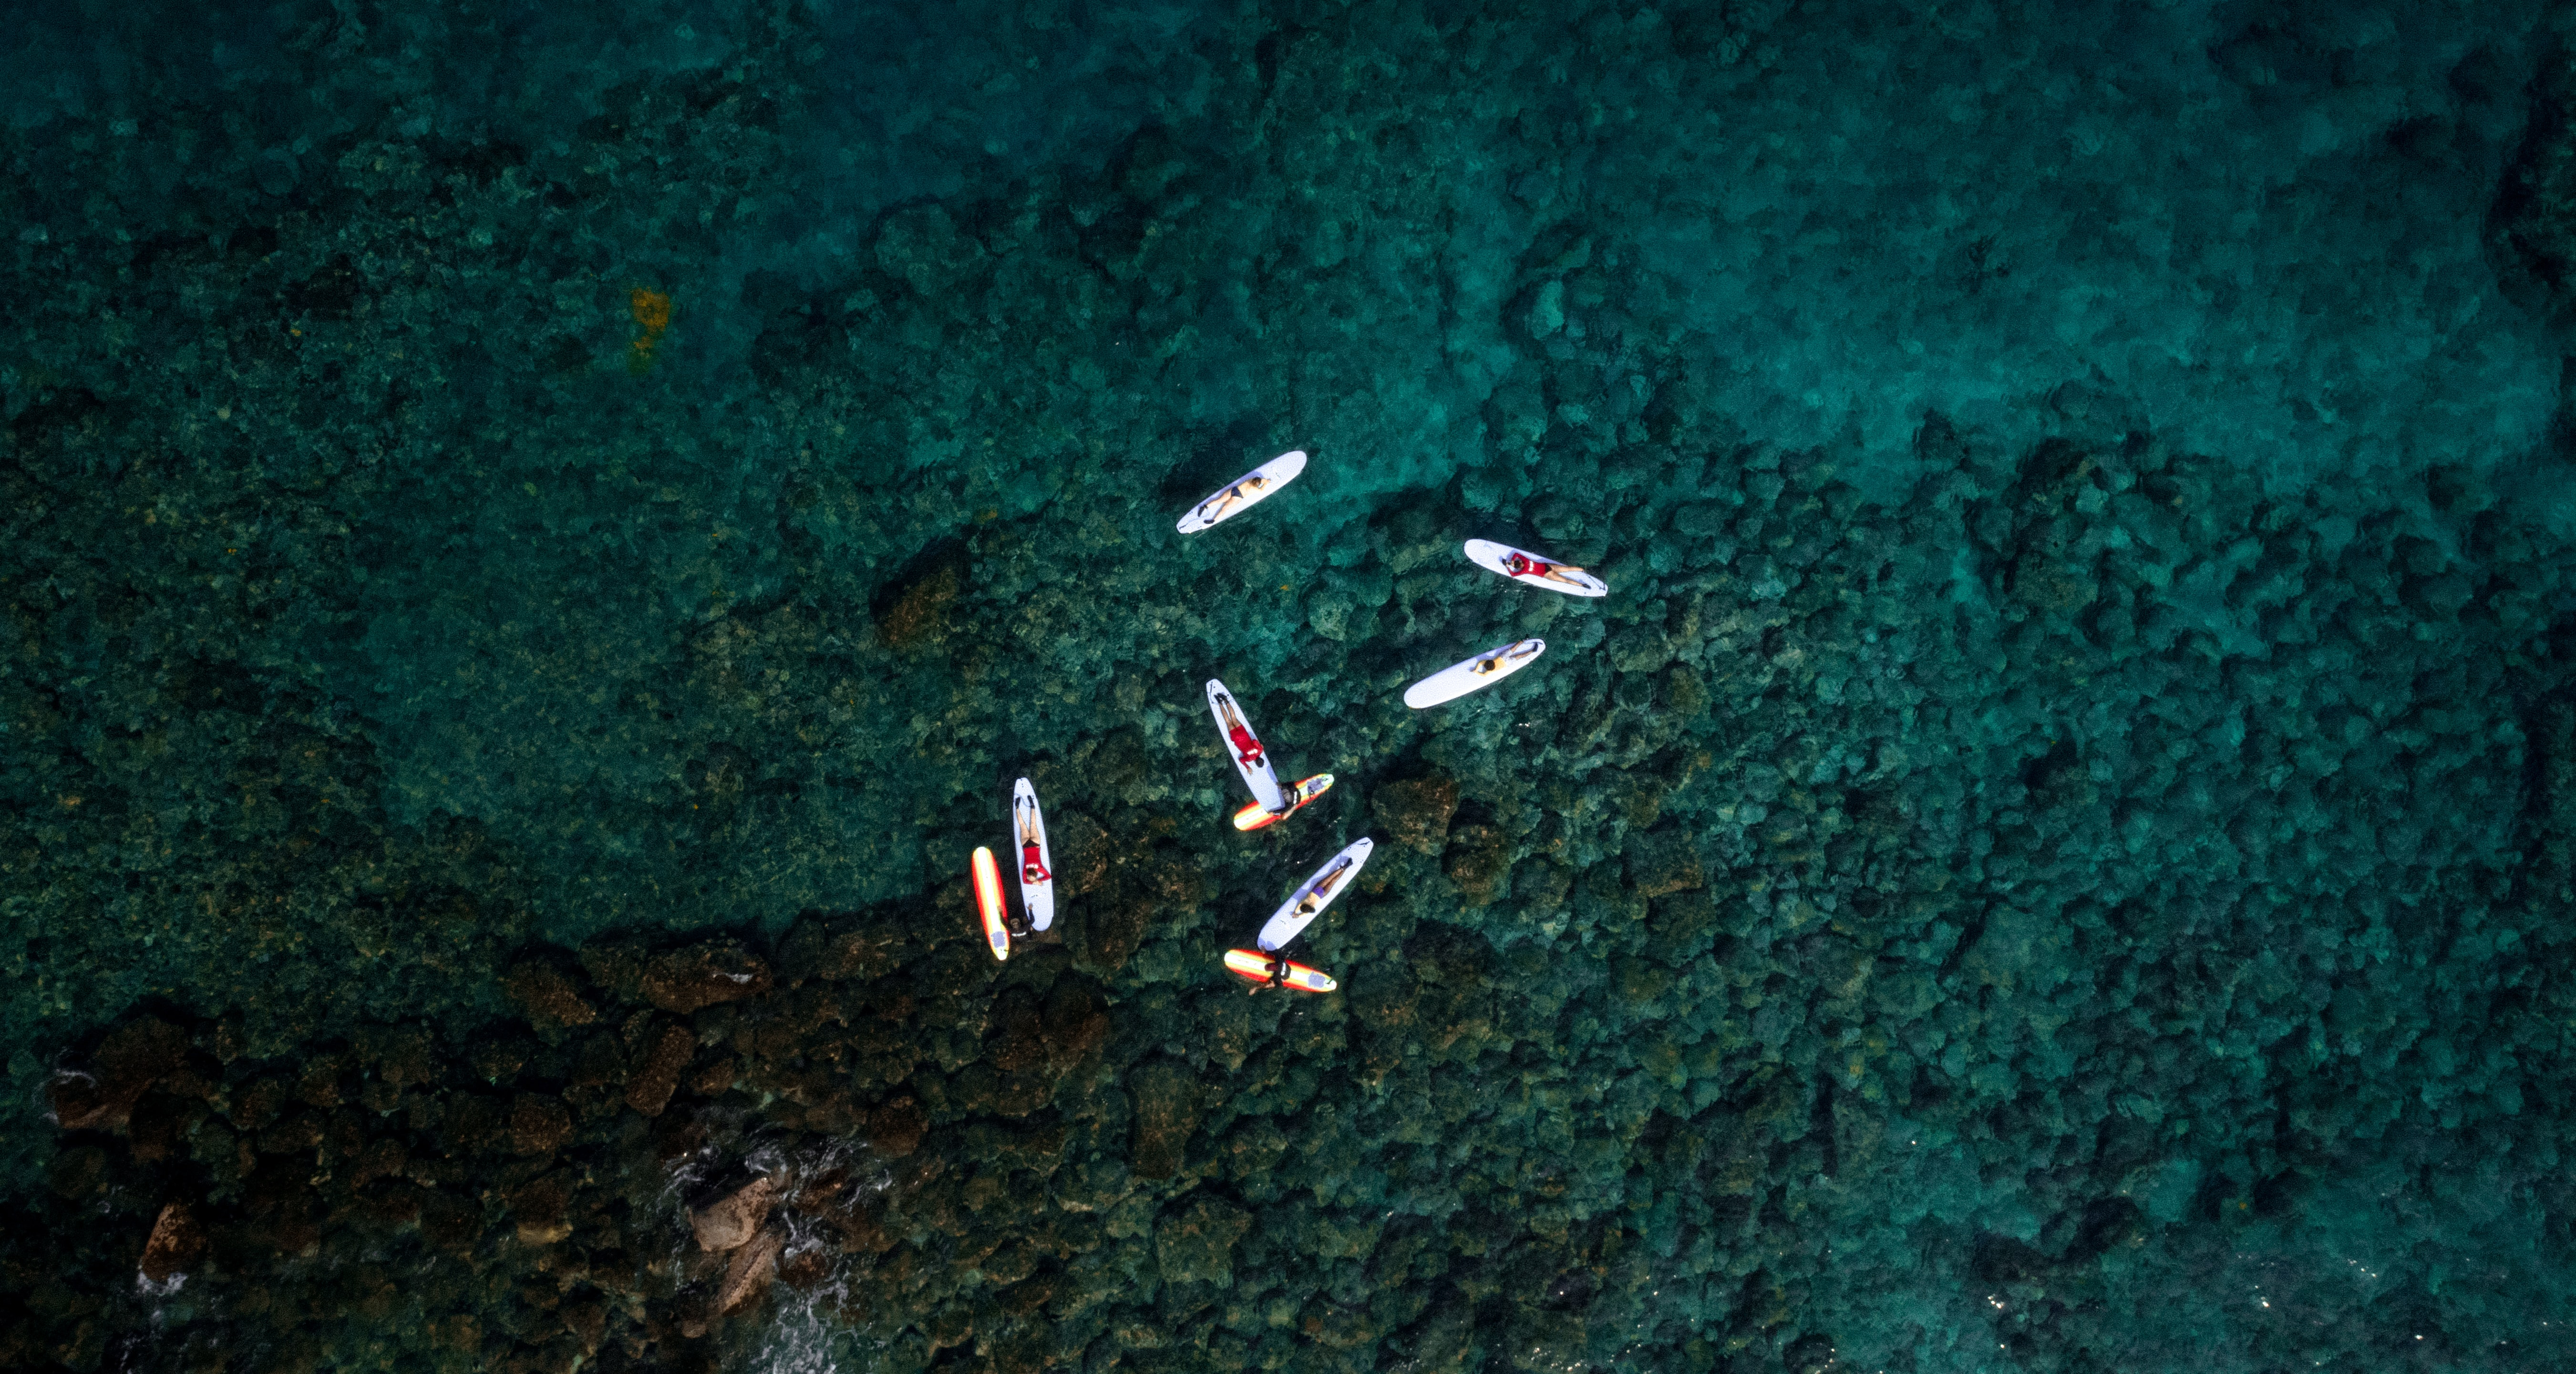 aerial photography of boats on body of water at daytime